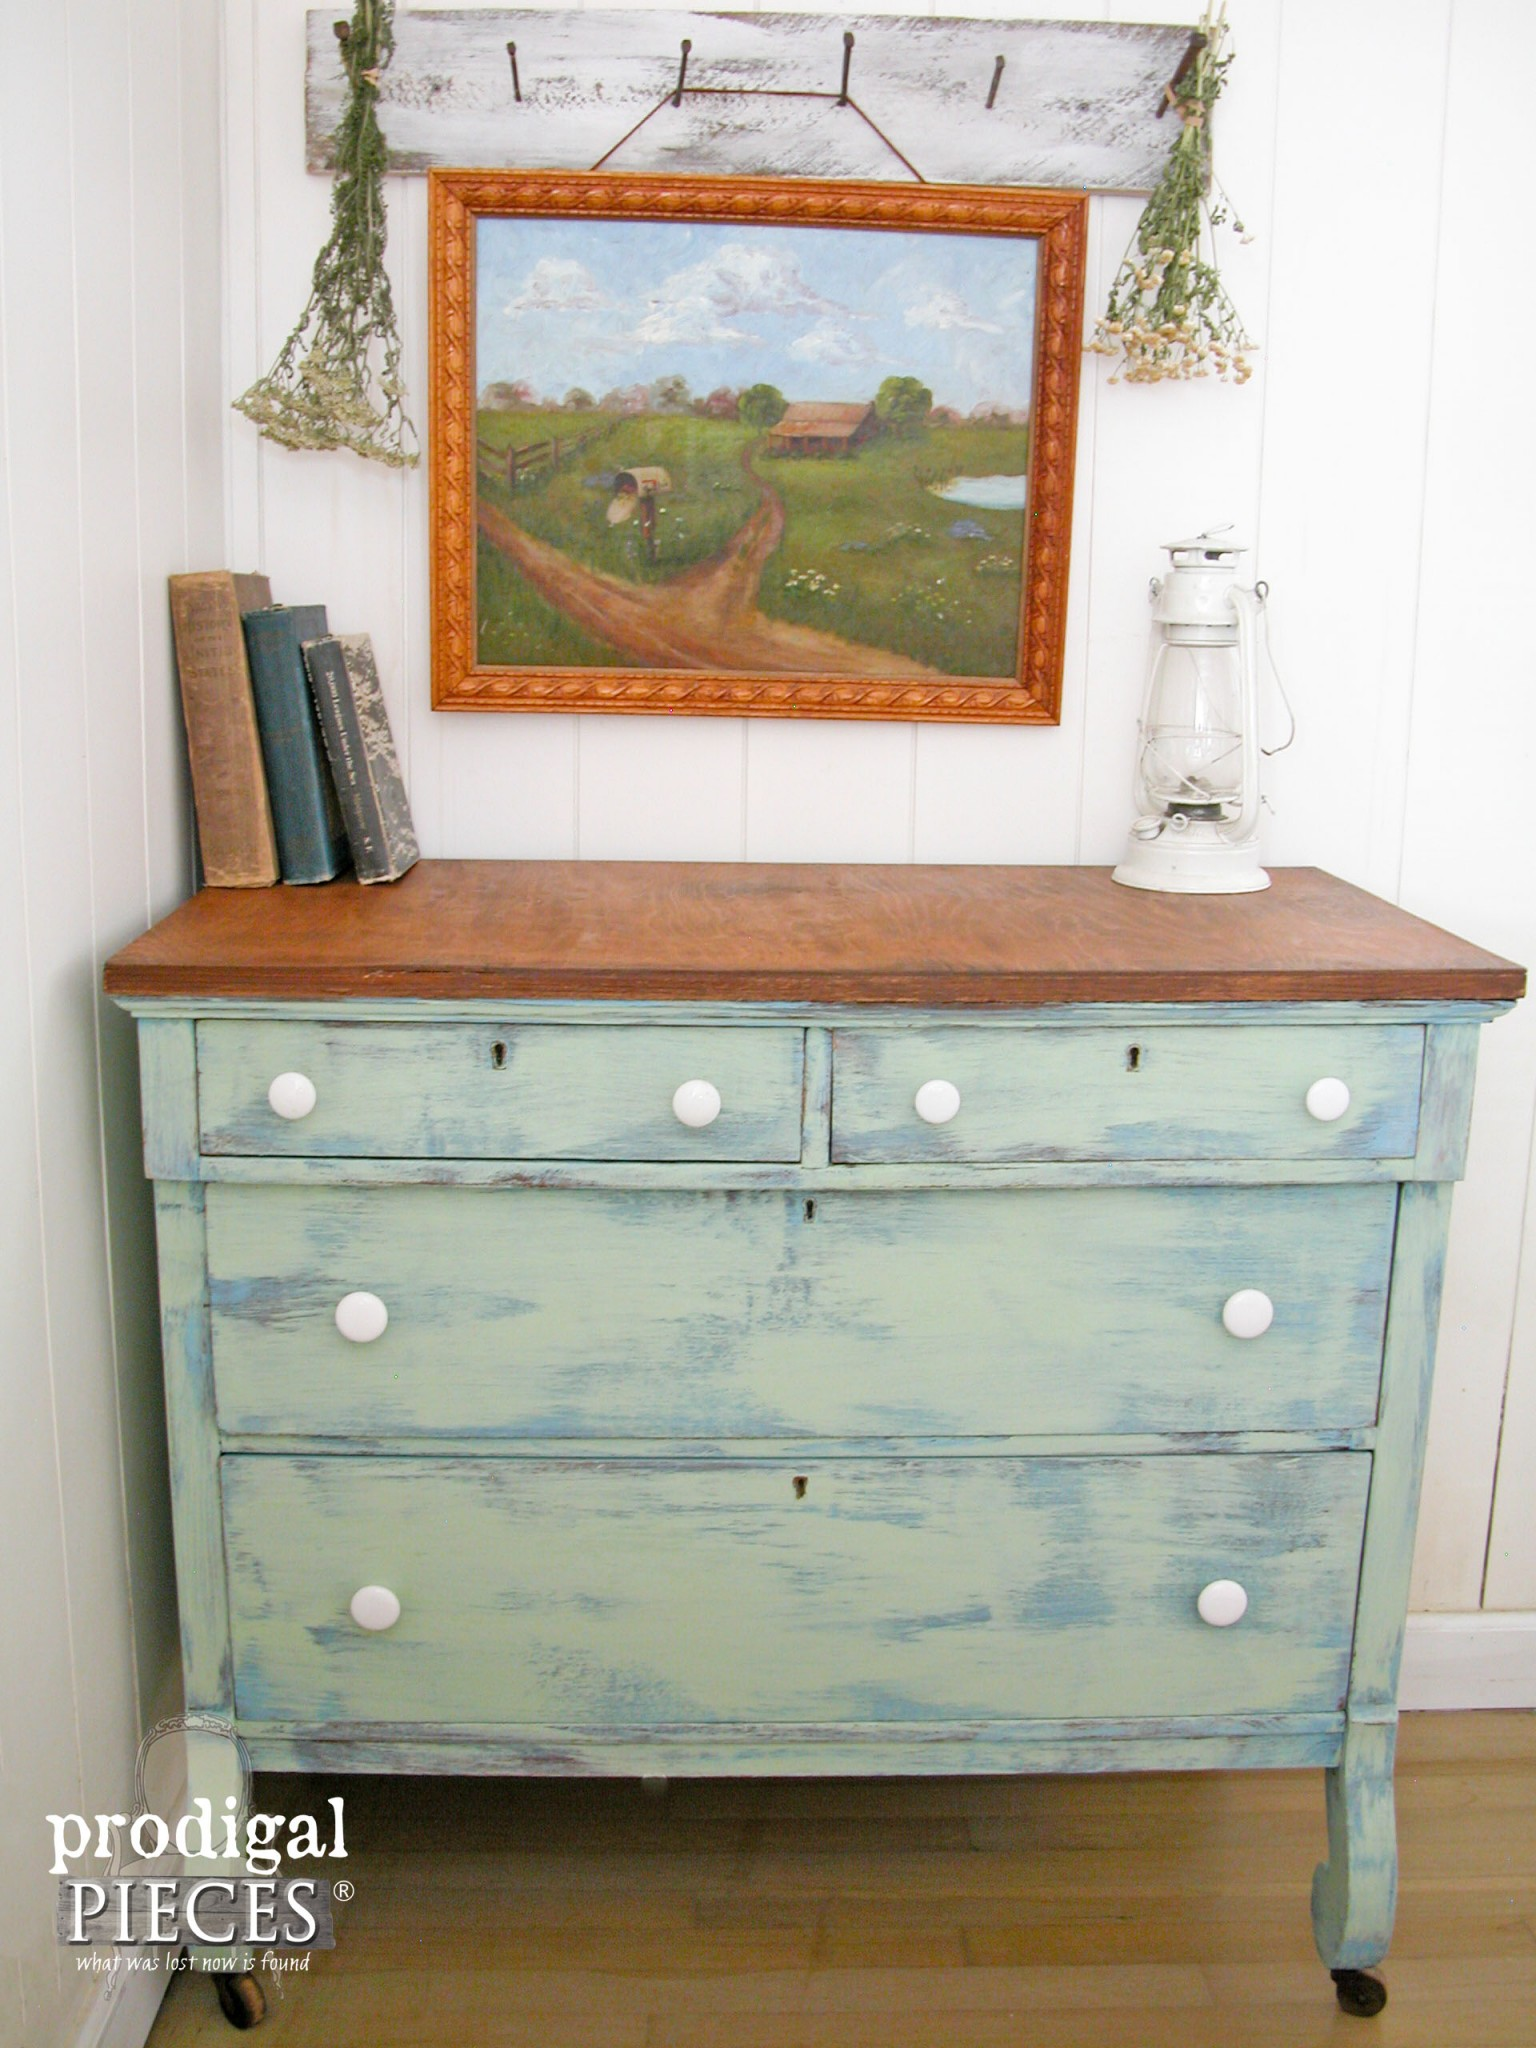 Farmhouse Dresser with Damaged Veneer Removal Tutorial by Prodigal Pieces | prodigalpieces.com